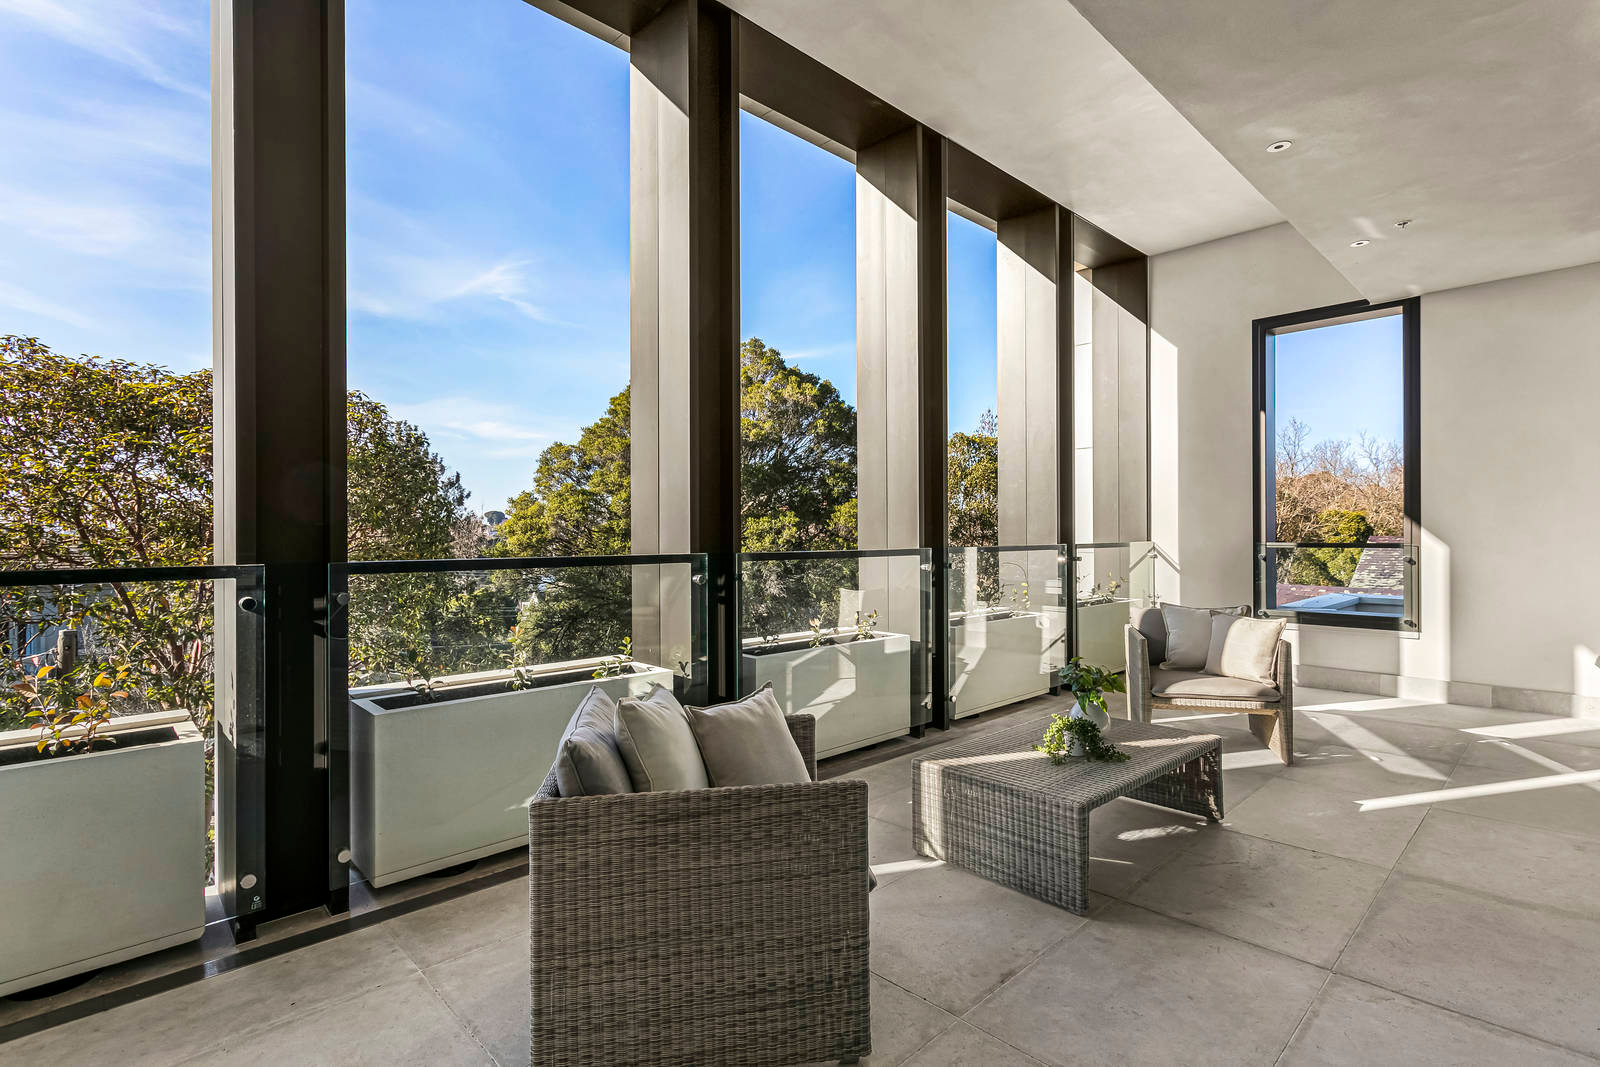 DOMINION - 209 Kooyong Road, Toorak 3142 - Image 7